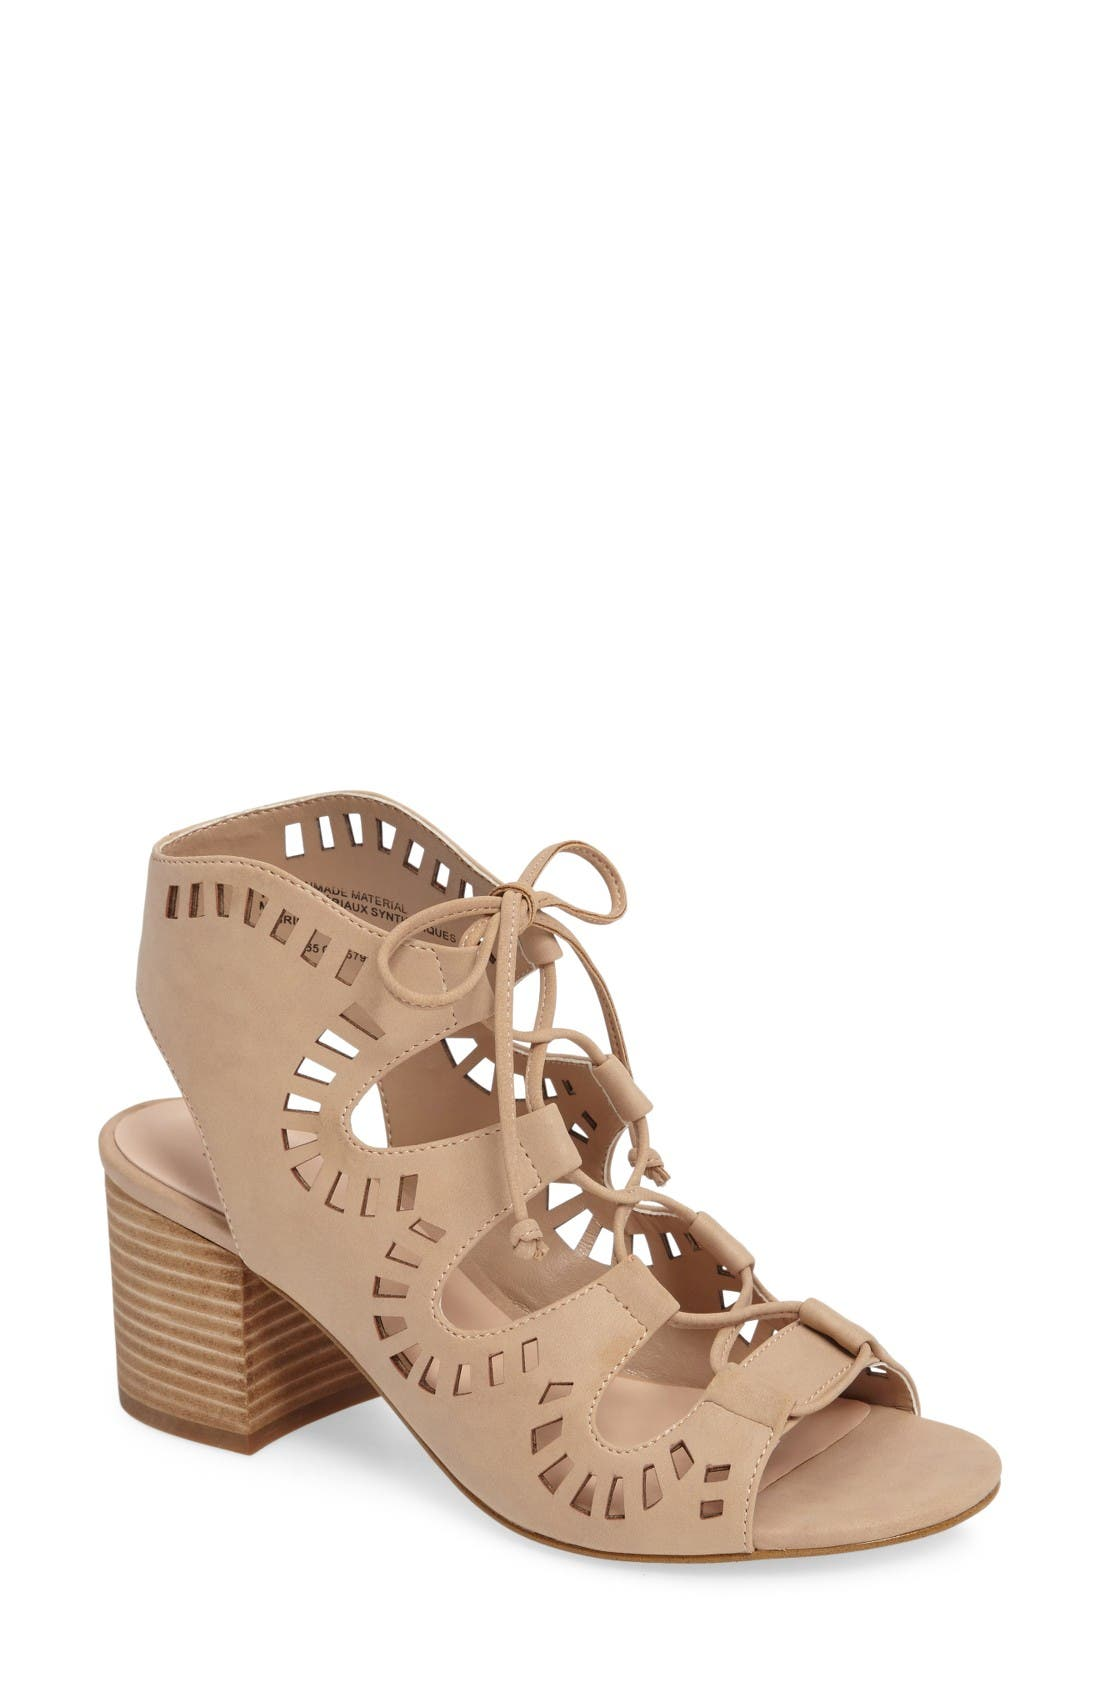 Alternate Image 1 Selected - BP. Decker Lace-Up Sandal (Women)